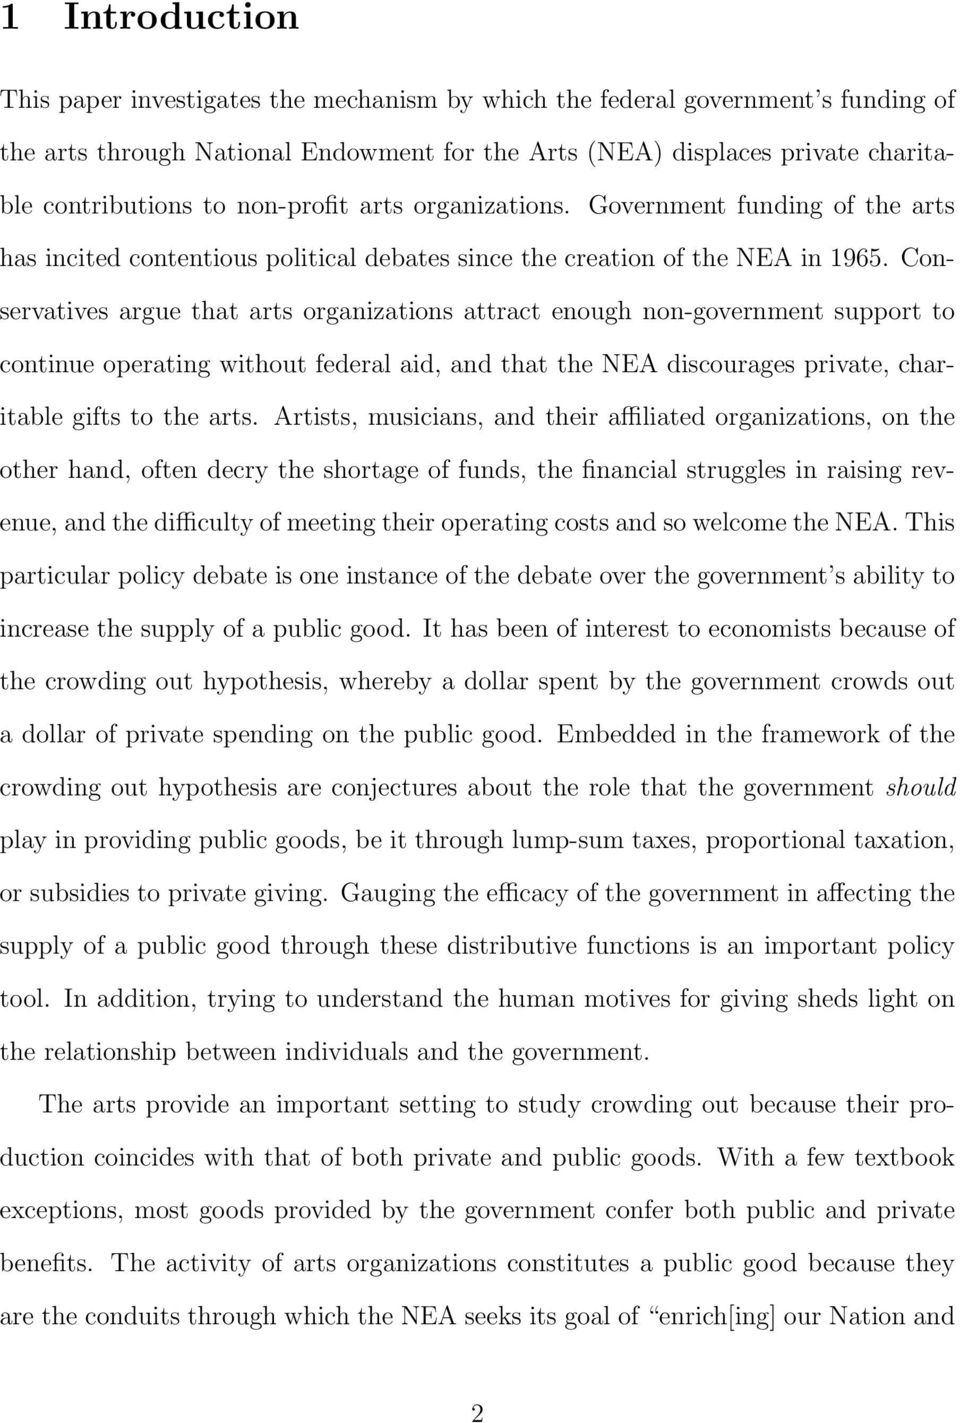 Conservatives argue that arts organizations attract enough non-government support to continue operating without federal aid, and that the NEA discourages private, charitable gifts to the arts.